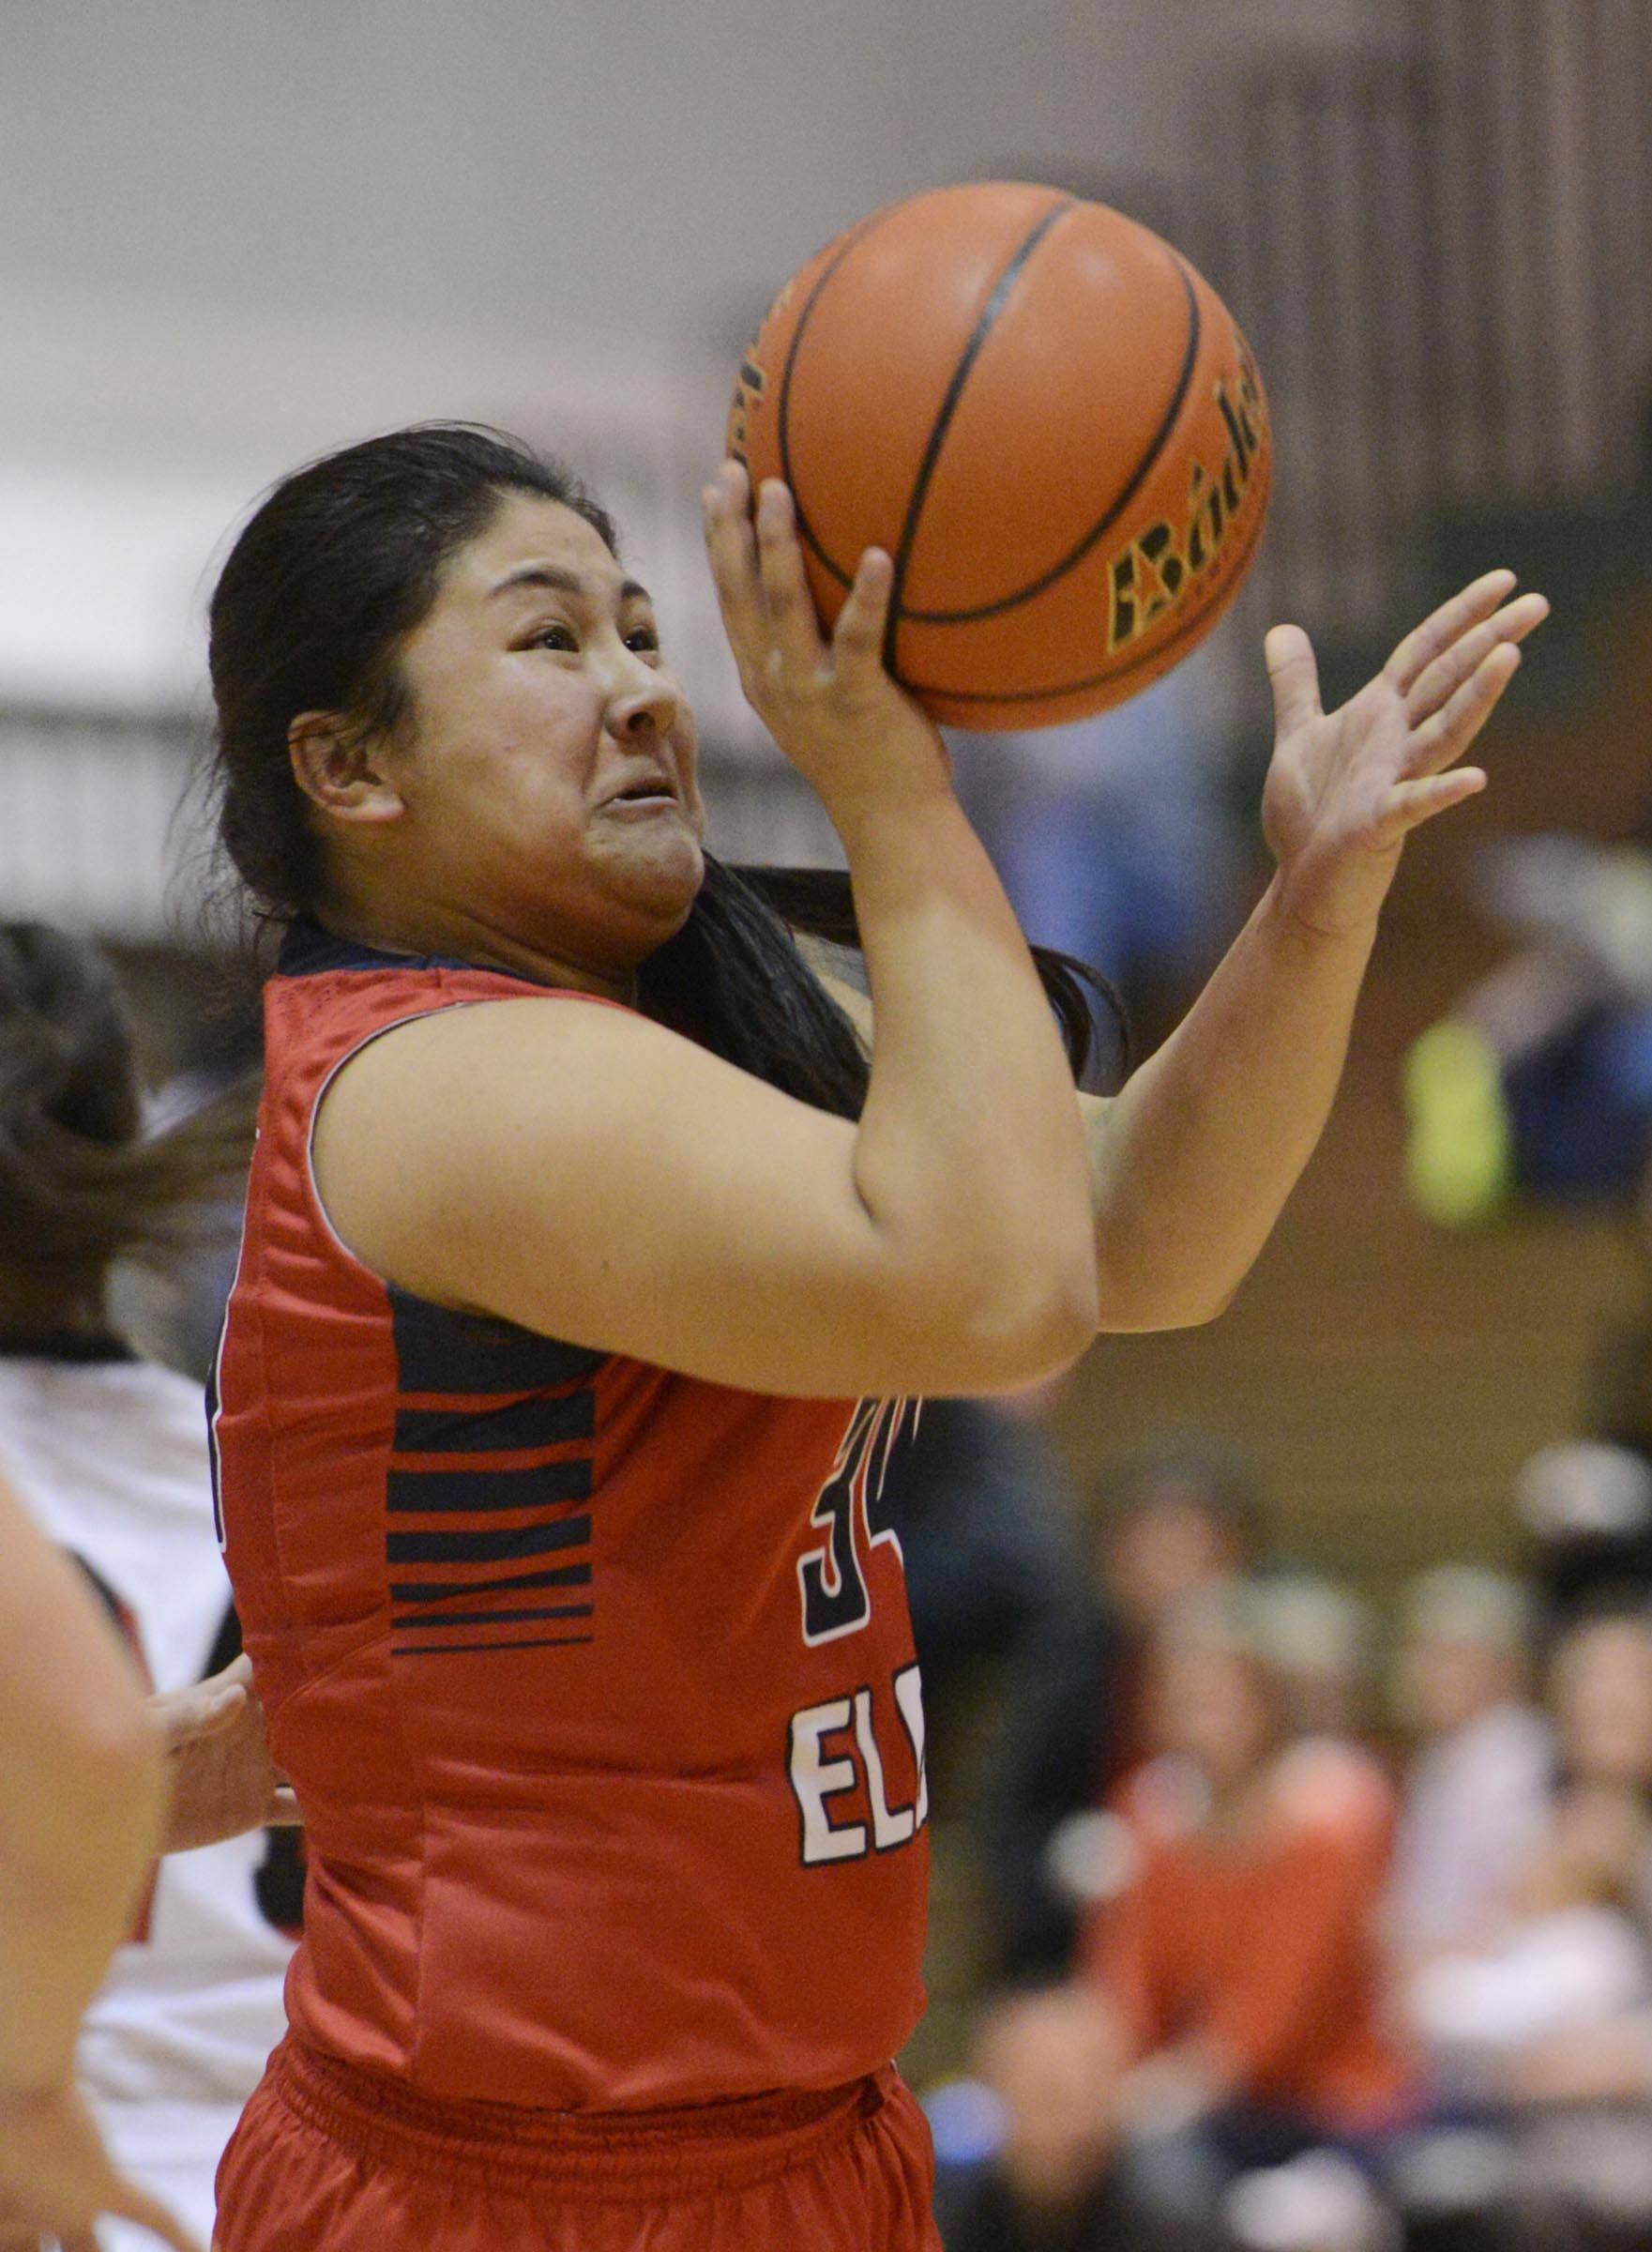 Images from the South Elgin vs. Huntley girls basketball Class 4A sectional semifinal Tuesday, February 25, 2014 in Crystal Lake.